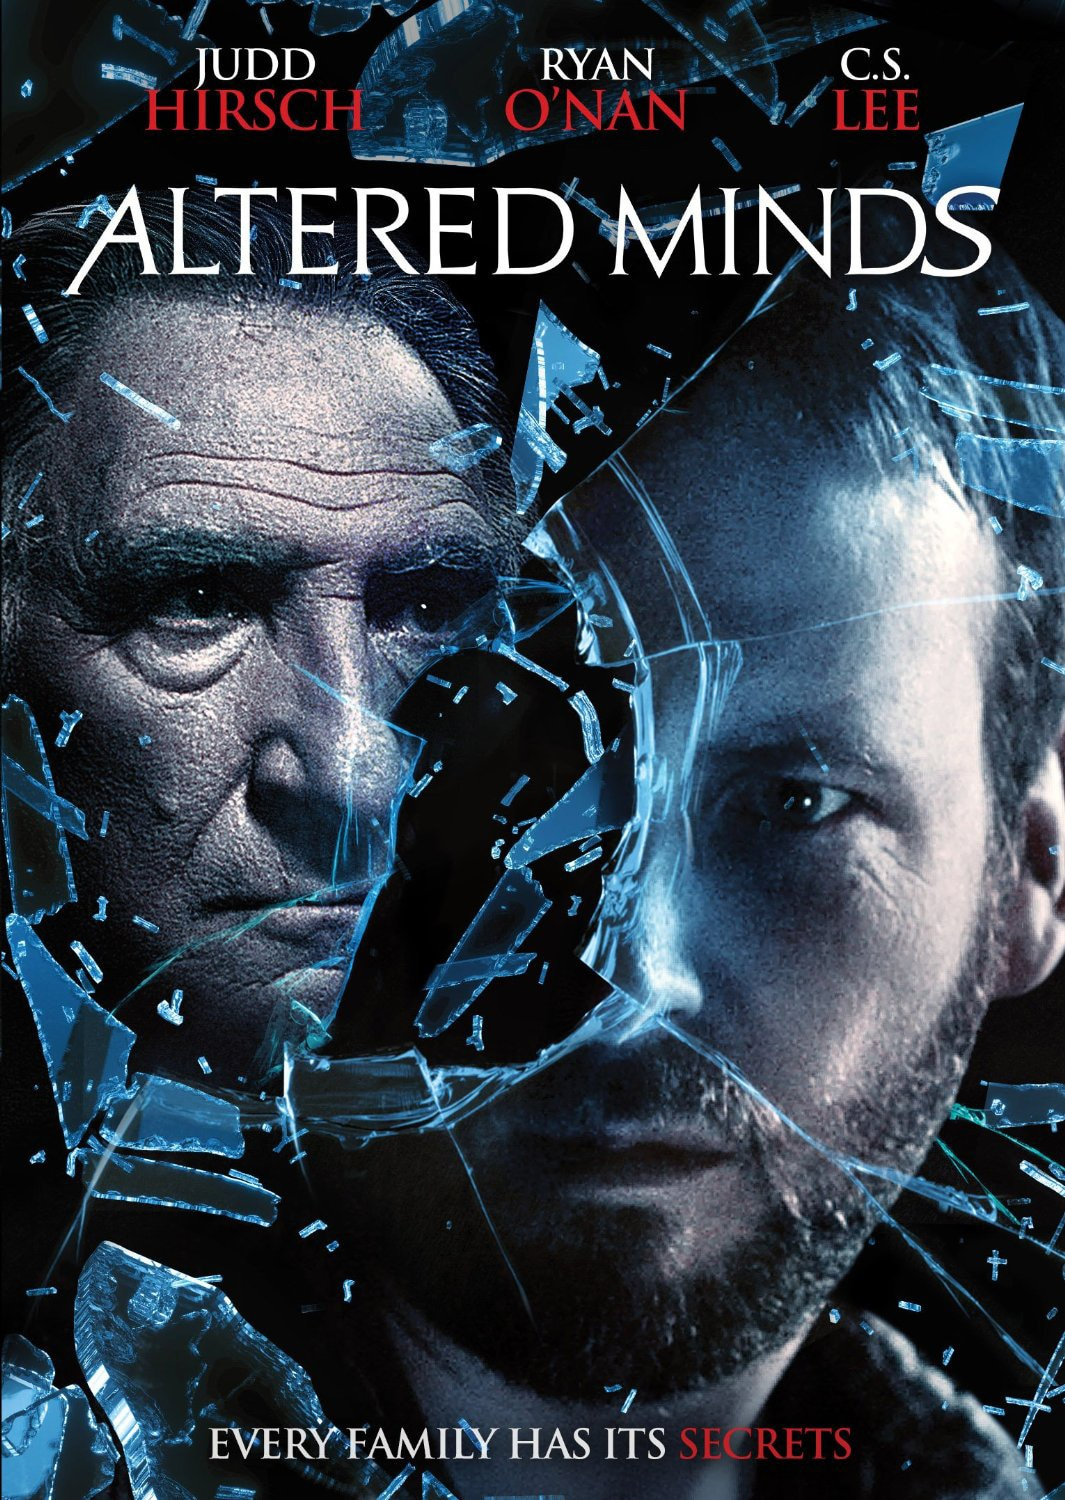 AlteredMindsDVD.jpg?zoom=1 - Exclusive Altered Minds Clip Lurks in the Shadows